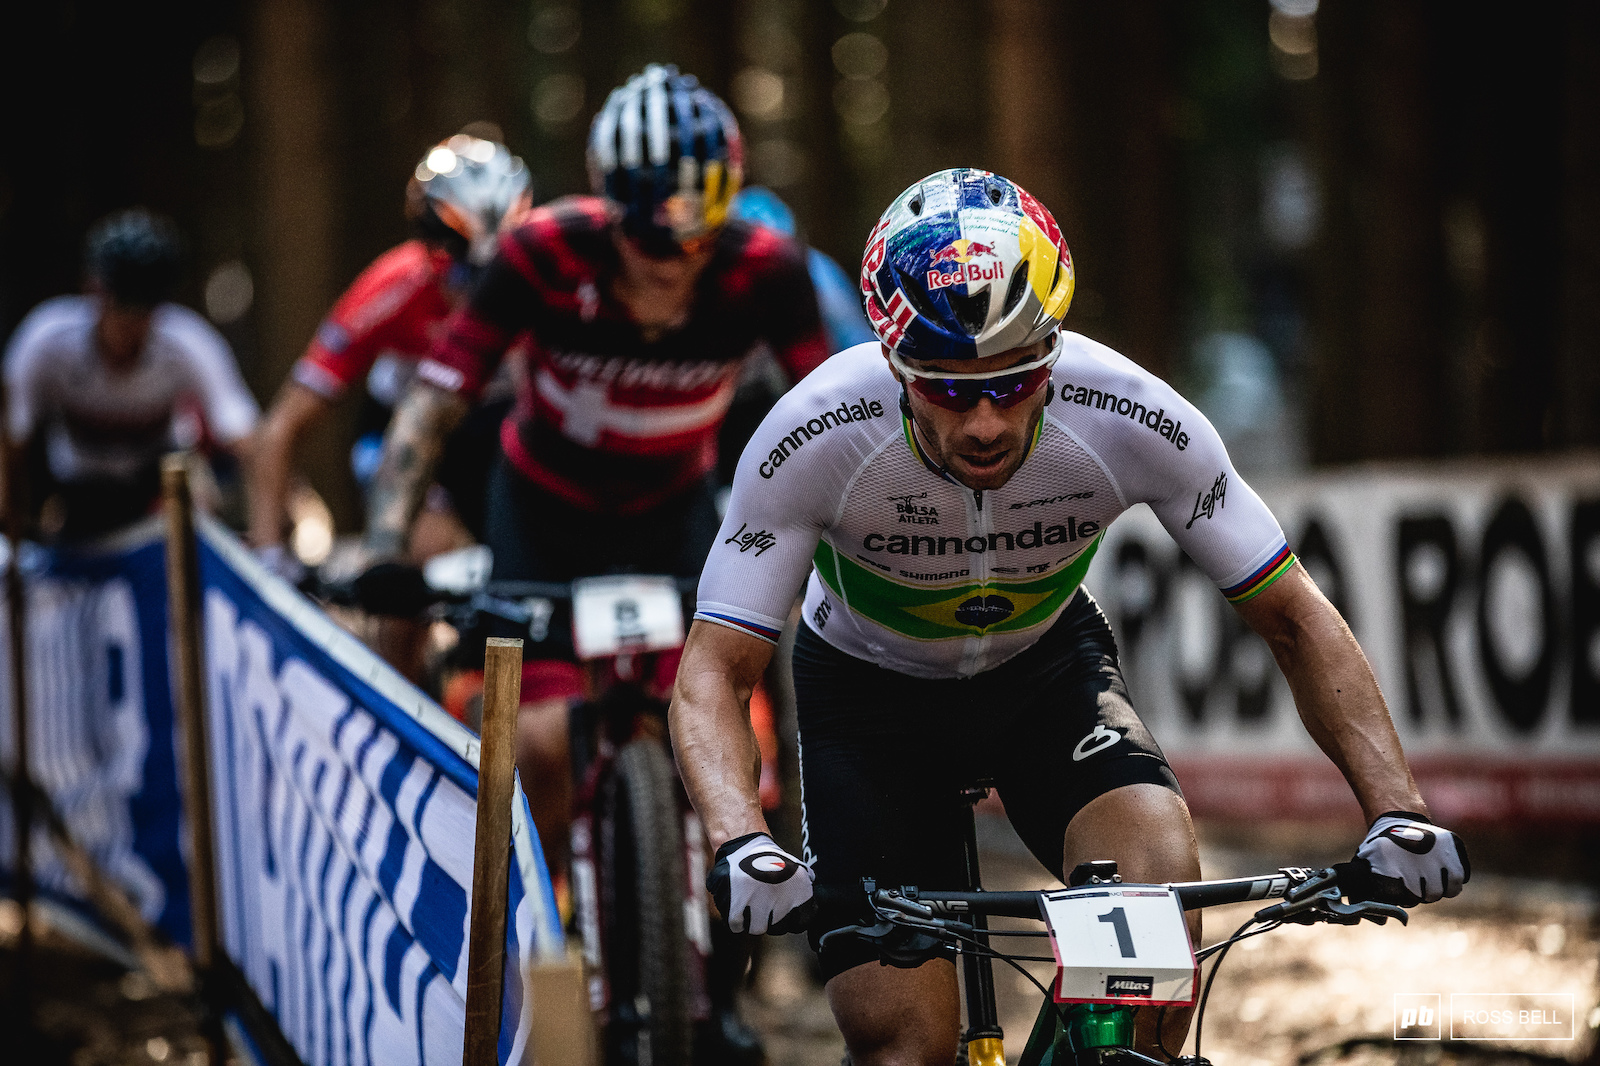 Henrique Avancini rode aggressively at the front all afternoon and managed to hold on for the win.